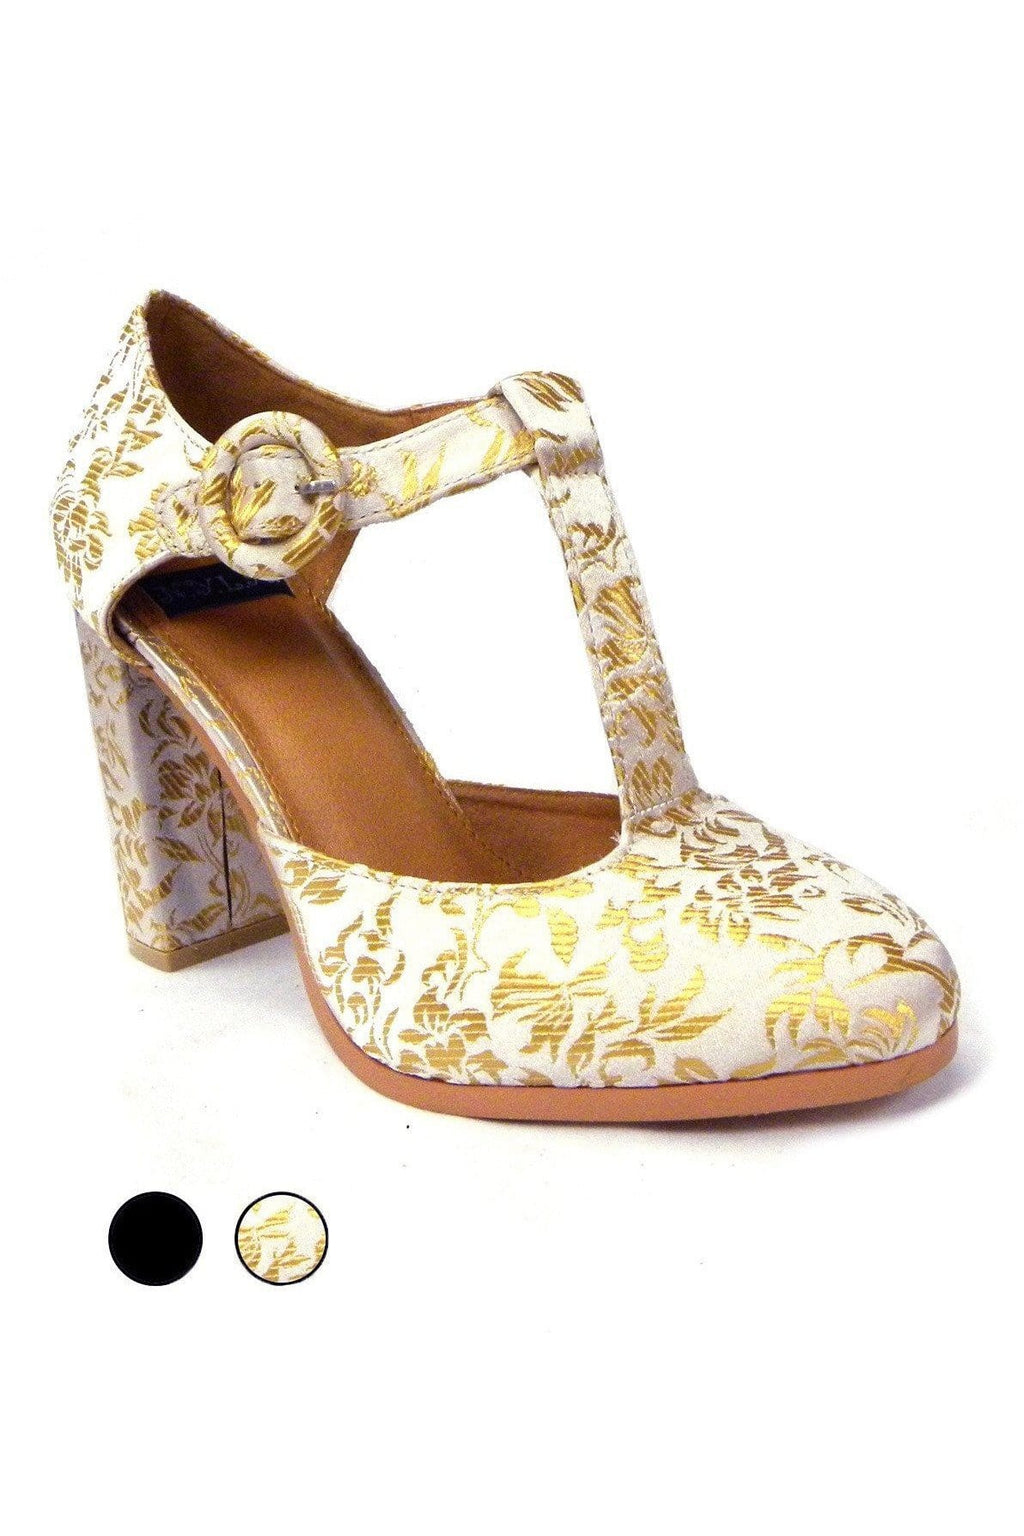 T-Strap Heels in Gold Brocade or Black Leather - Himelhoch's